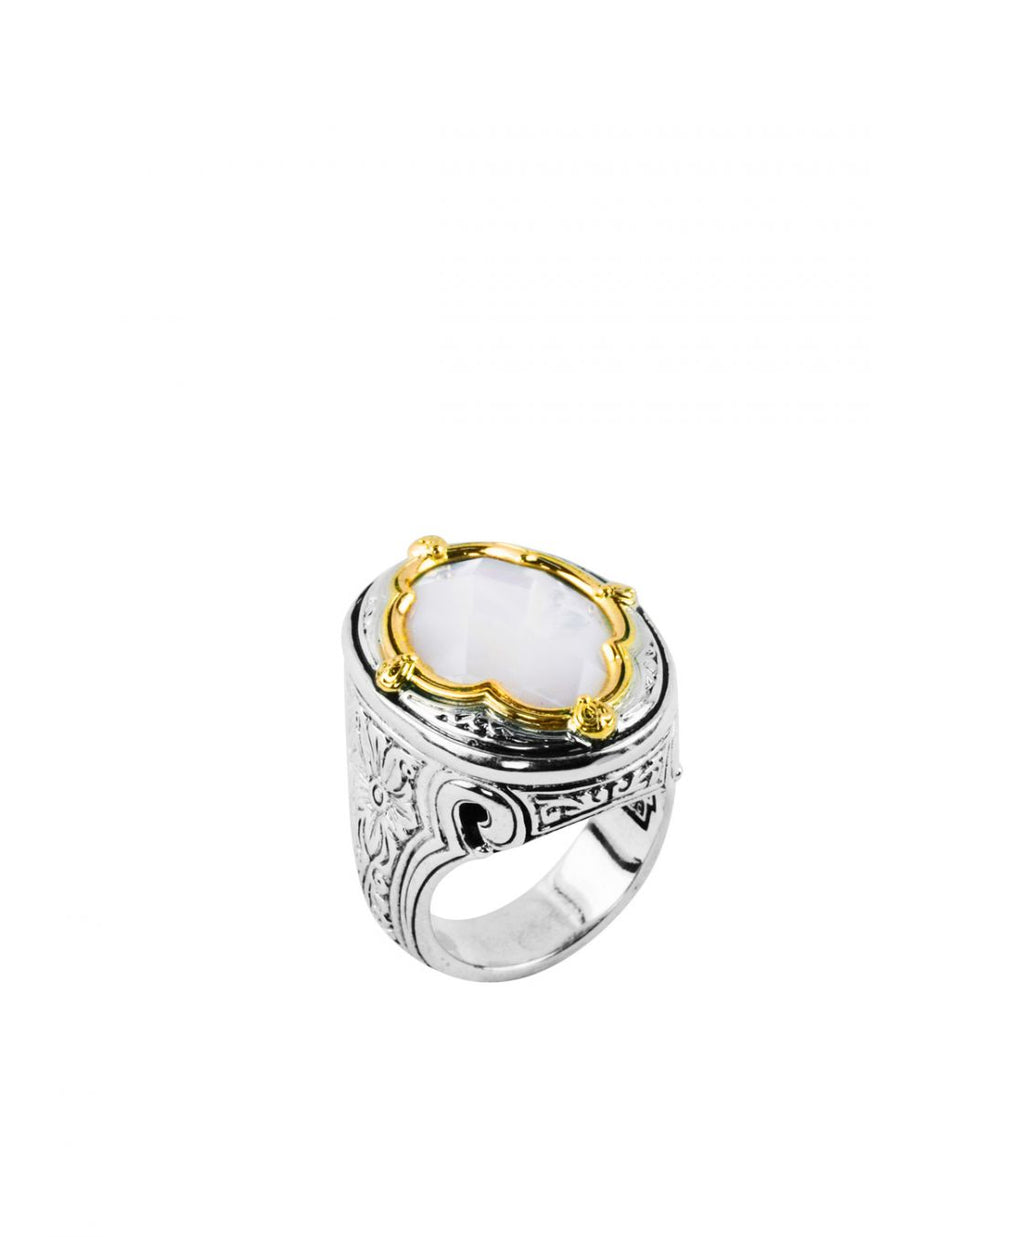 Konstantino Mother of Pearl Signet-style Ring